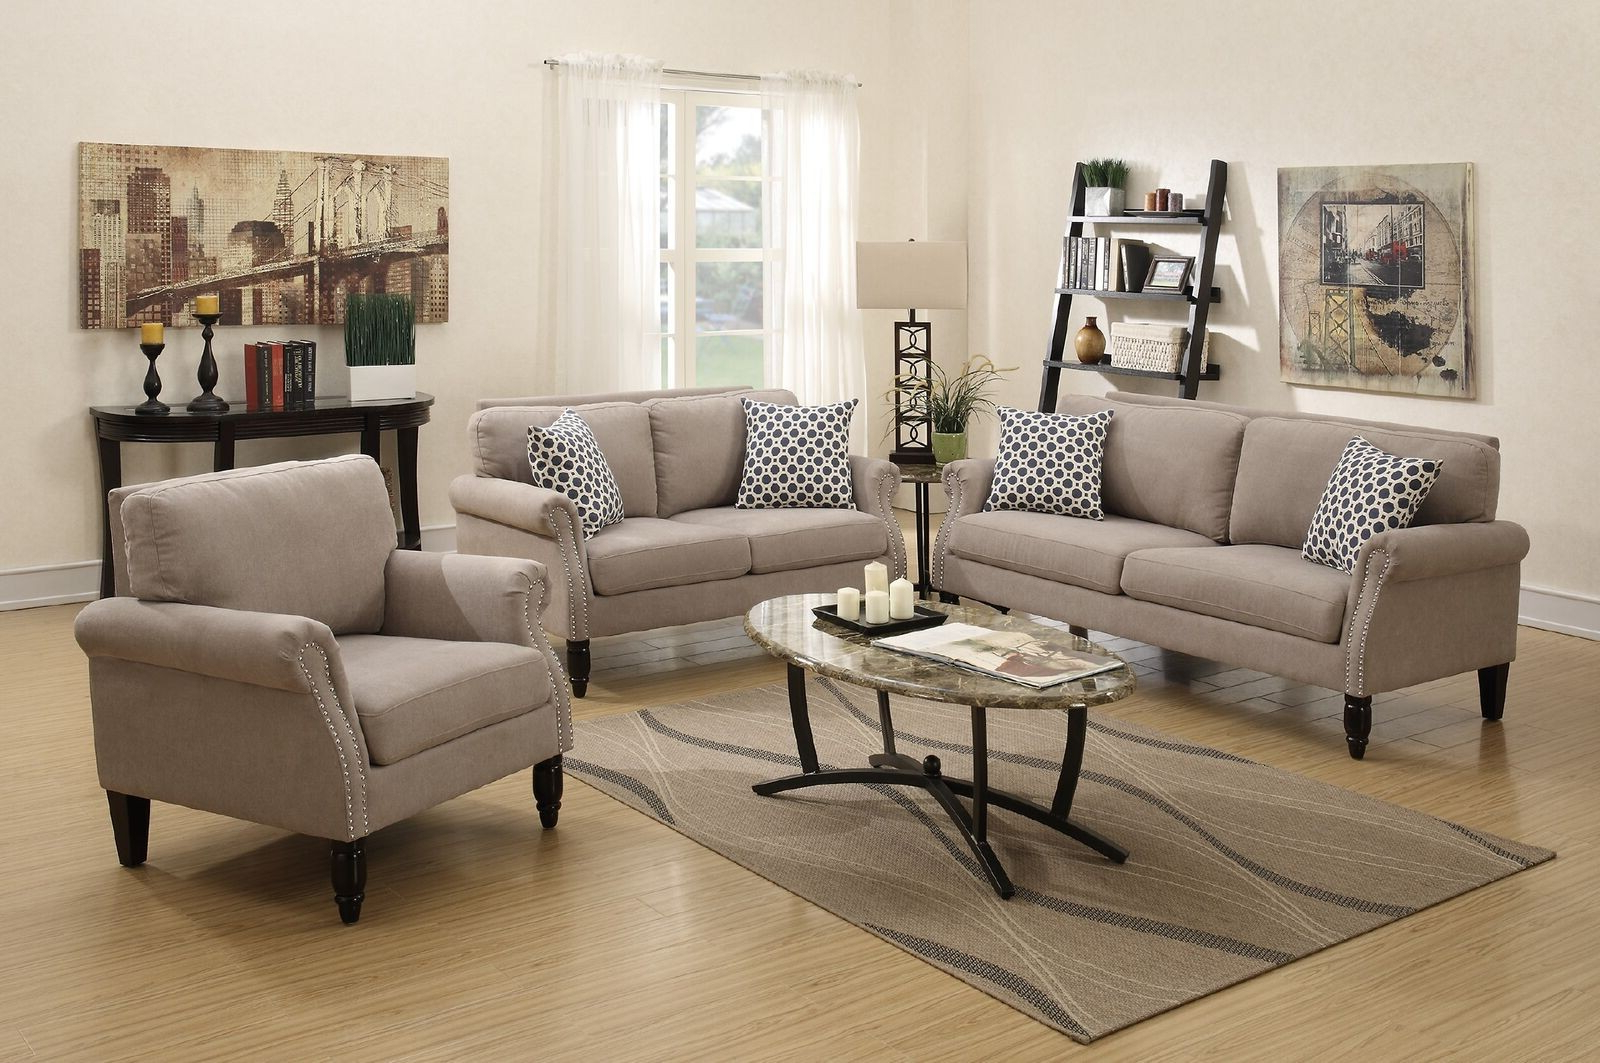 3Pcs Sand Sofa Loveseat Chair Set Lowest Price – Sofa, Sectional Pertaining To Best And Newest Sofa Loveseat And Chair Set (Gallery 13 of 20)